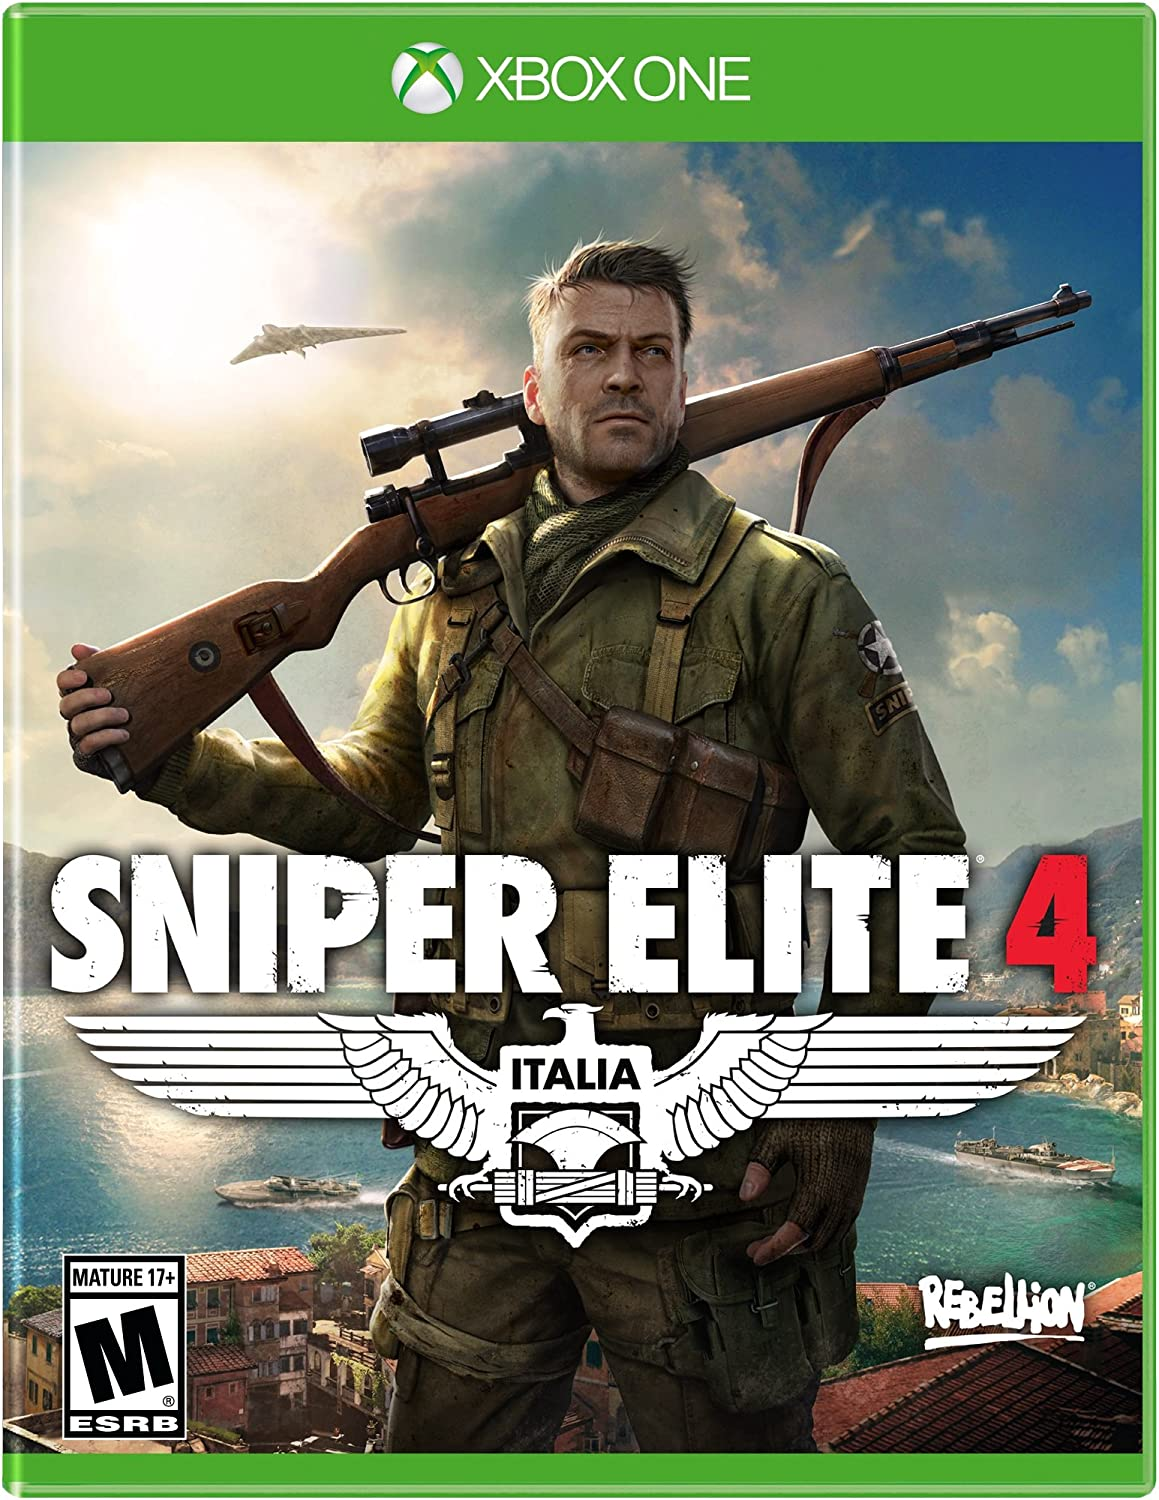 Sniper Elite 4 Xbox One Ui Entertainment Video Games Microsoft 360 Dissected Layout Changes Revealed